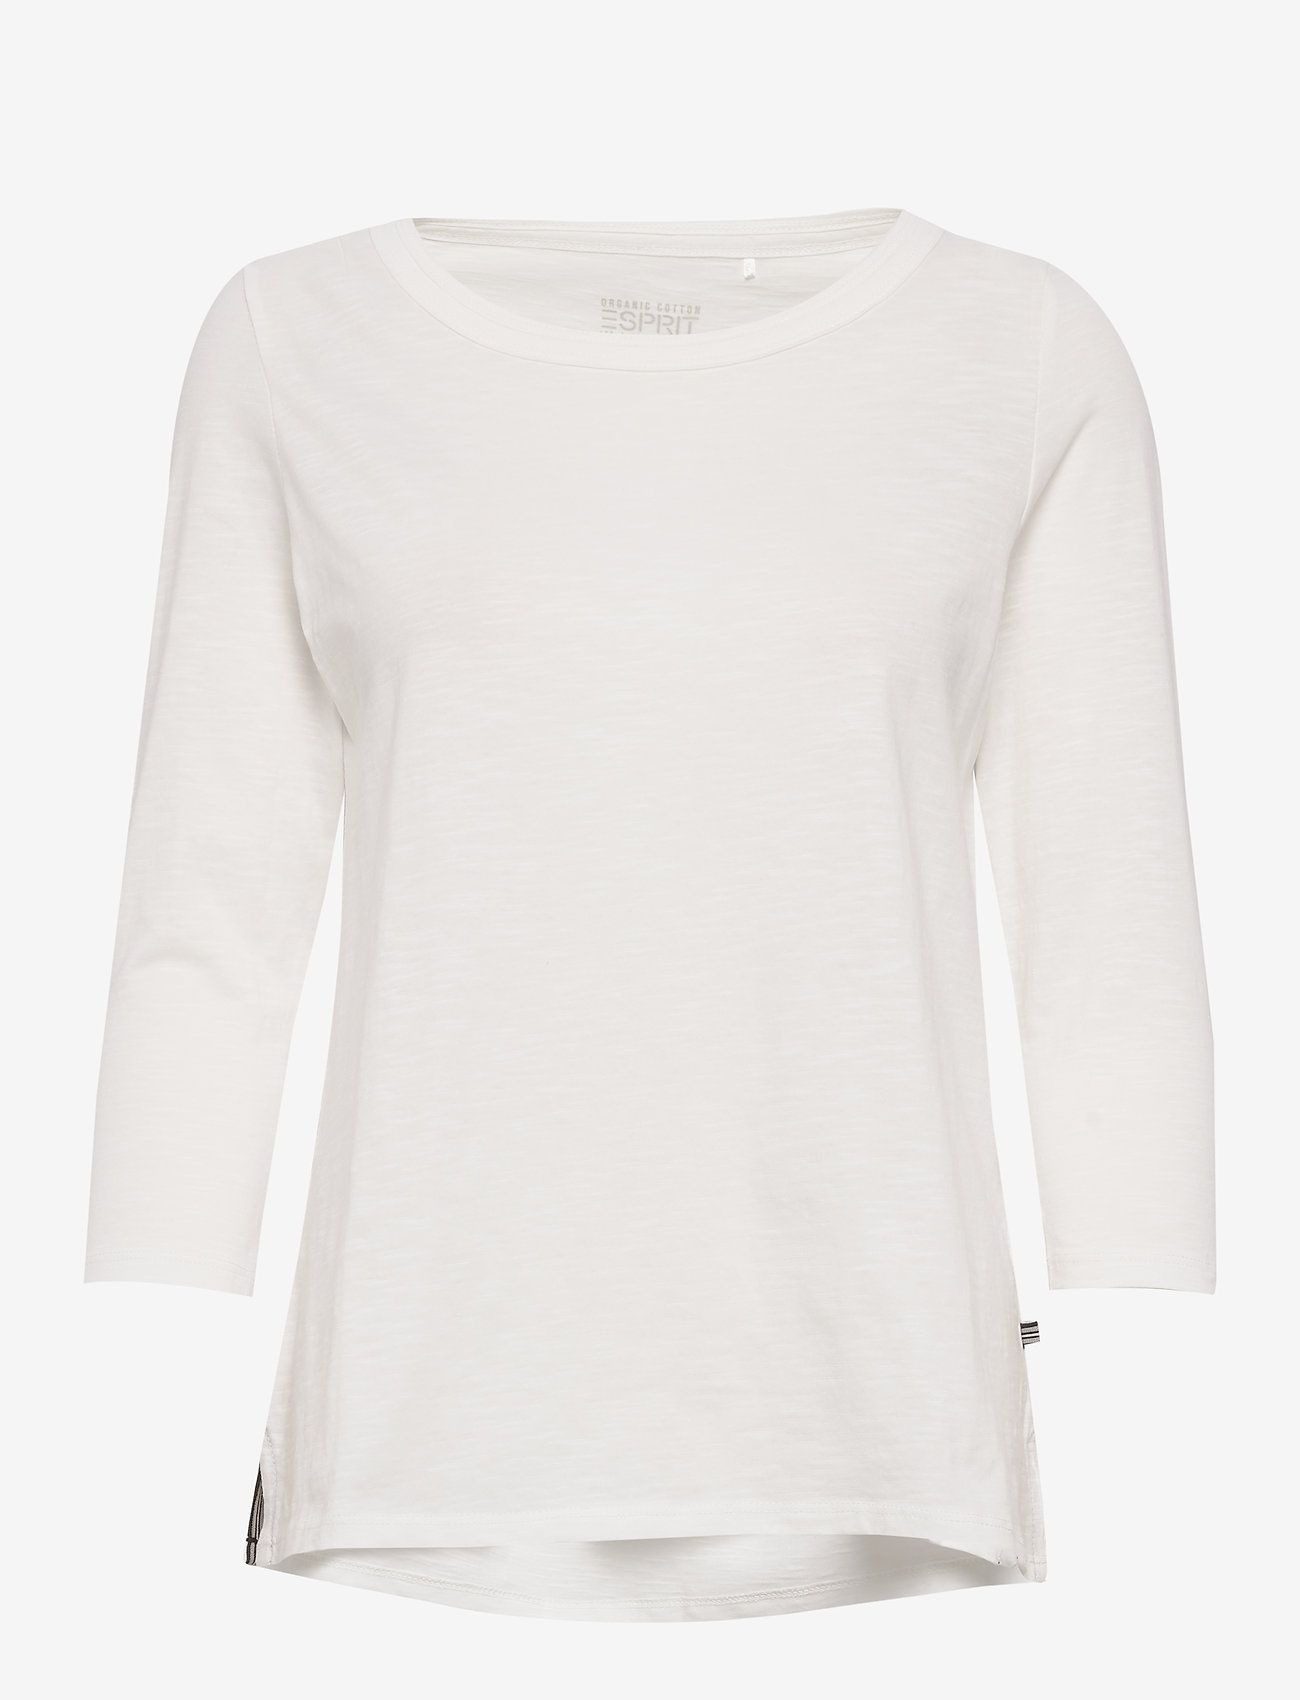 Esprit Casual - T-Shirts - basic t-shirts - off white - 0